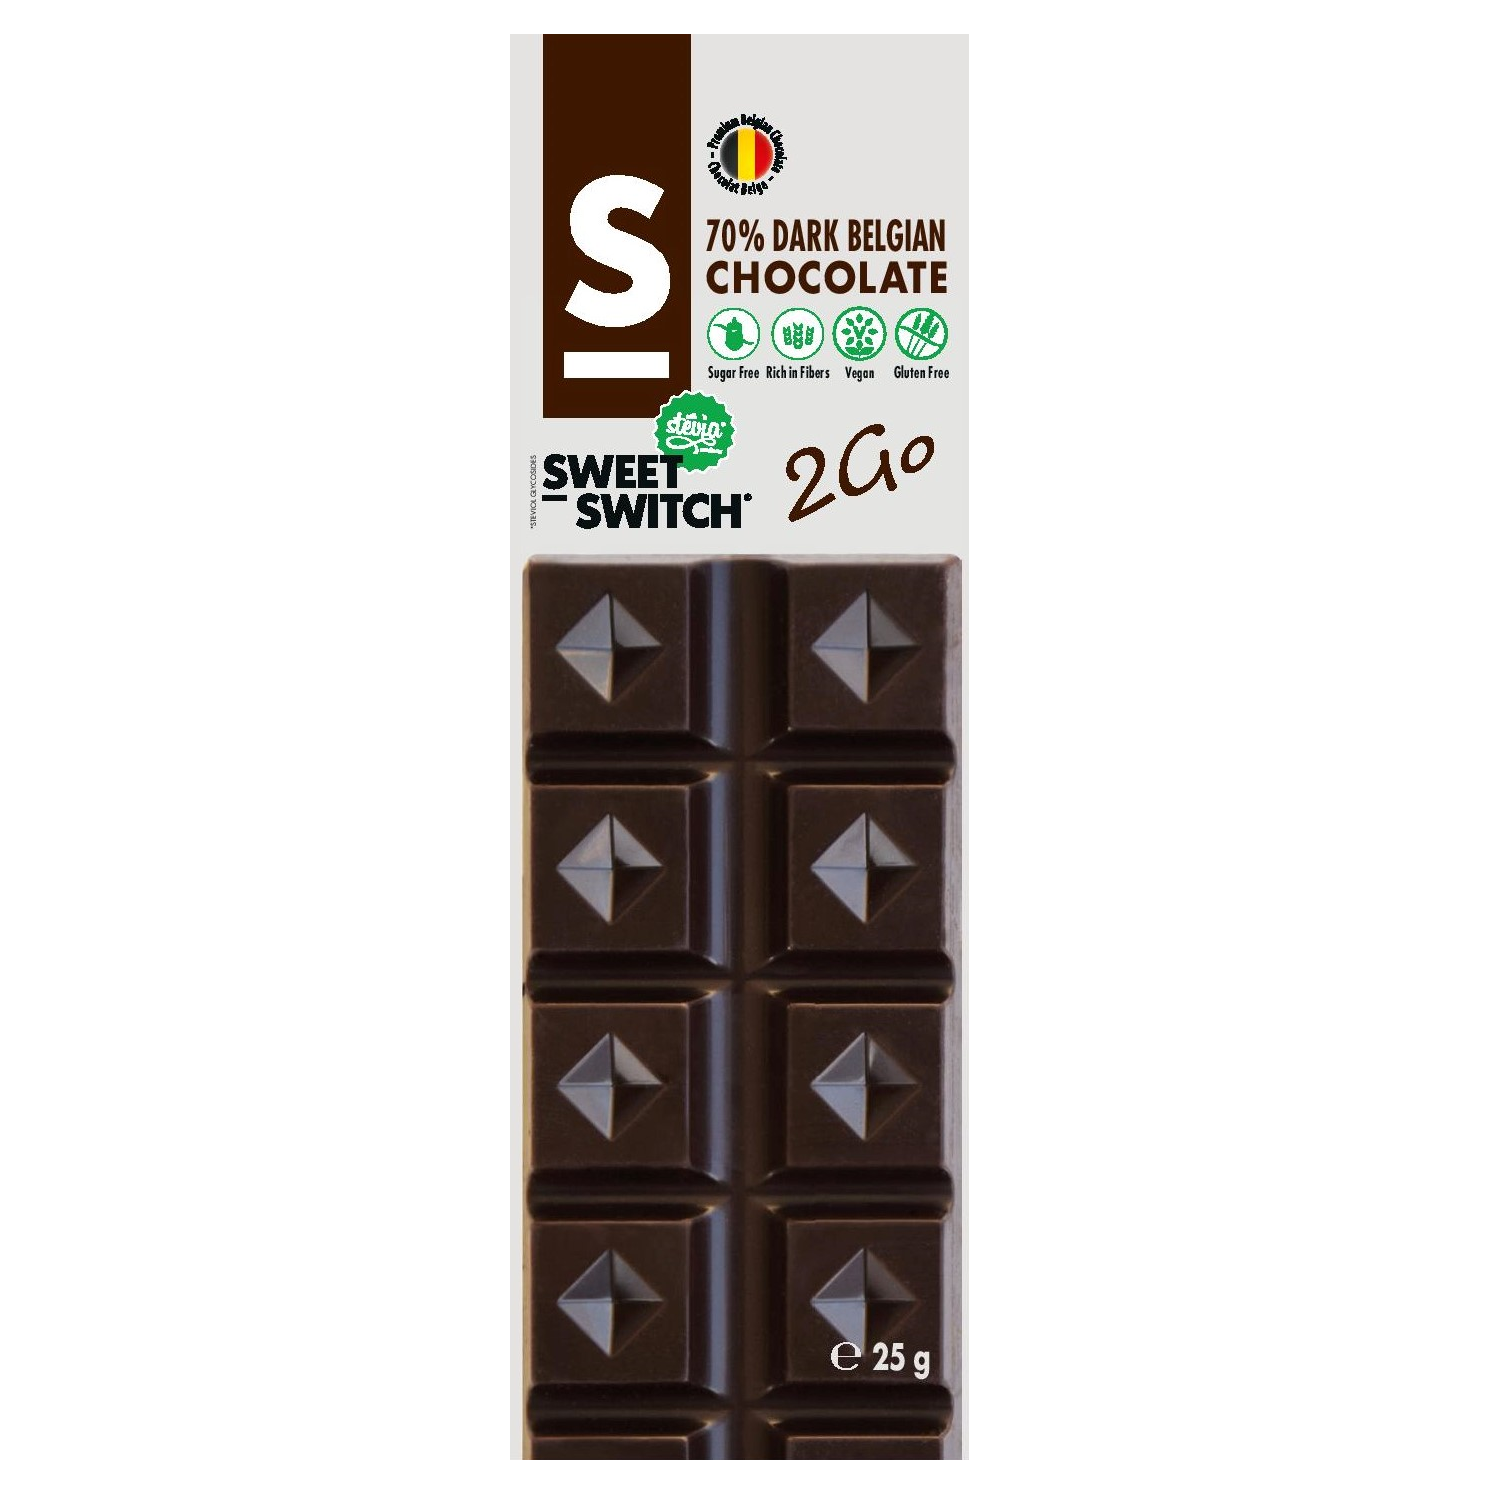 Dark Belgian Mini Chocolate Bar No Added Sugar Vegan Gluten Free Stevia Sweet Switch 25g